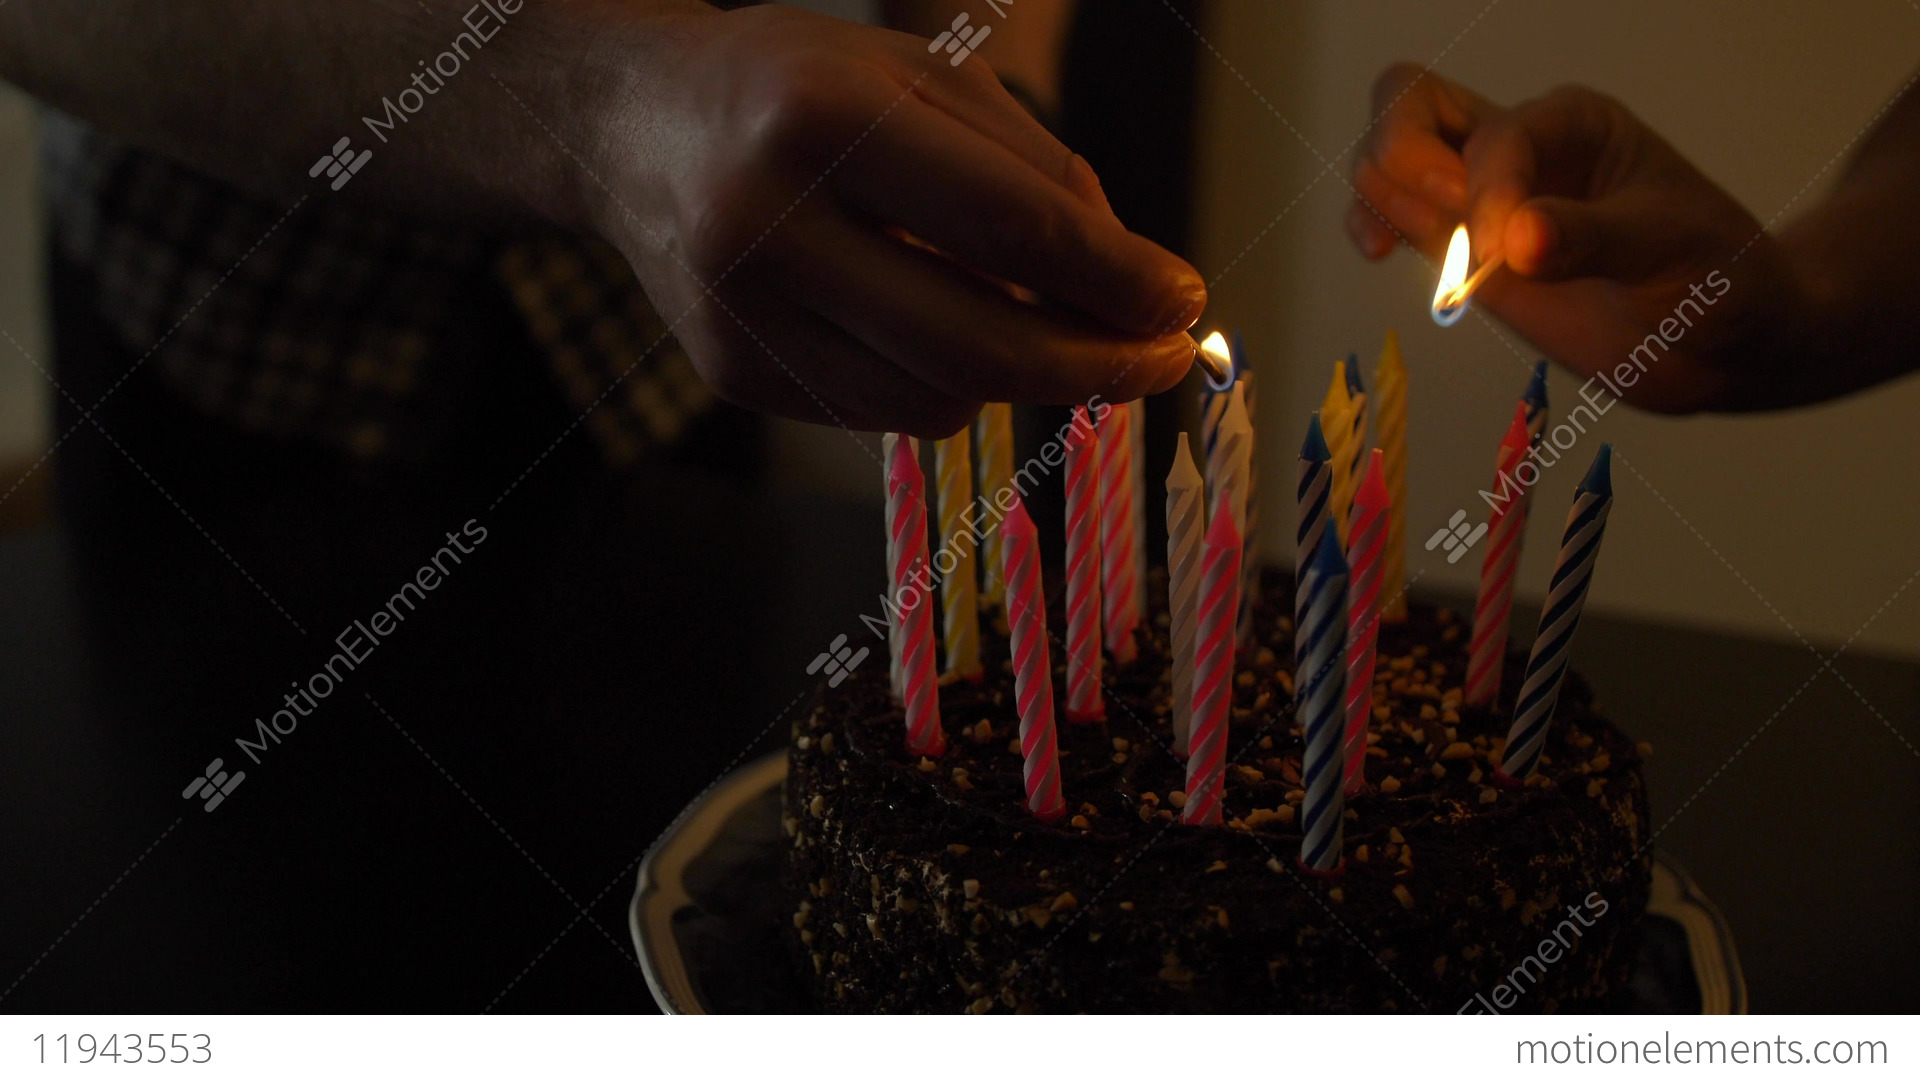 Woman And Man Lights Candles On Tasty Birthday Cake Prepearing For